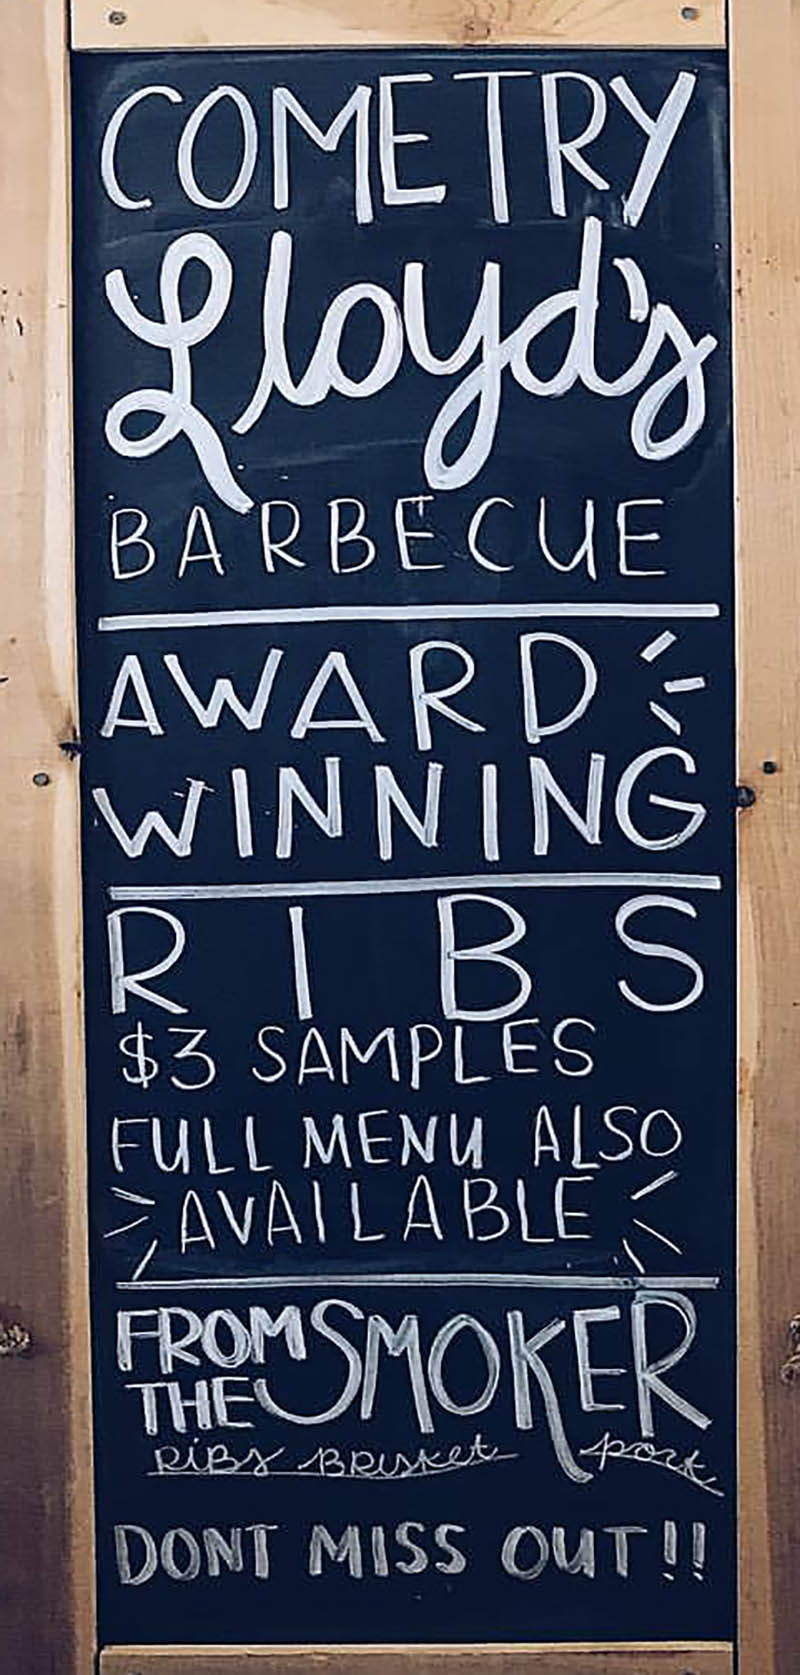 Lloyd's barbeque coupons 2018